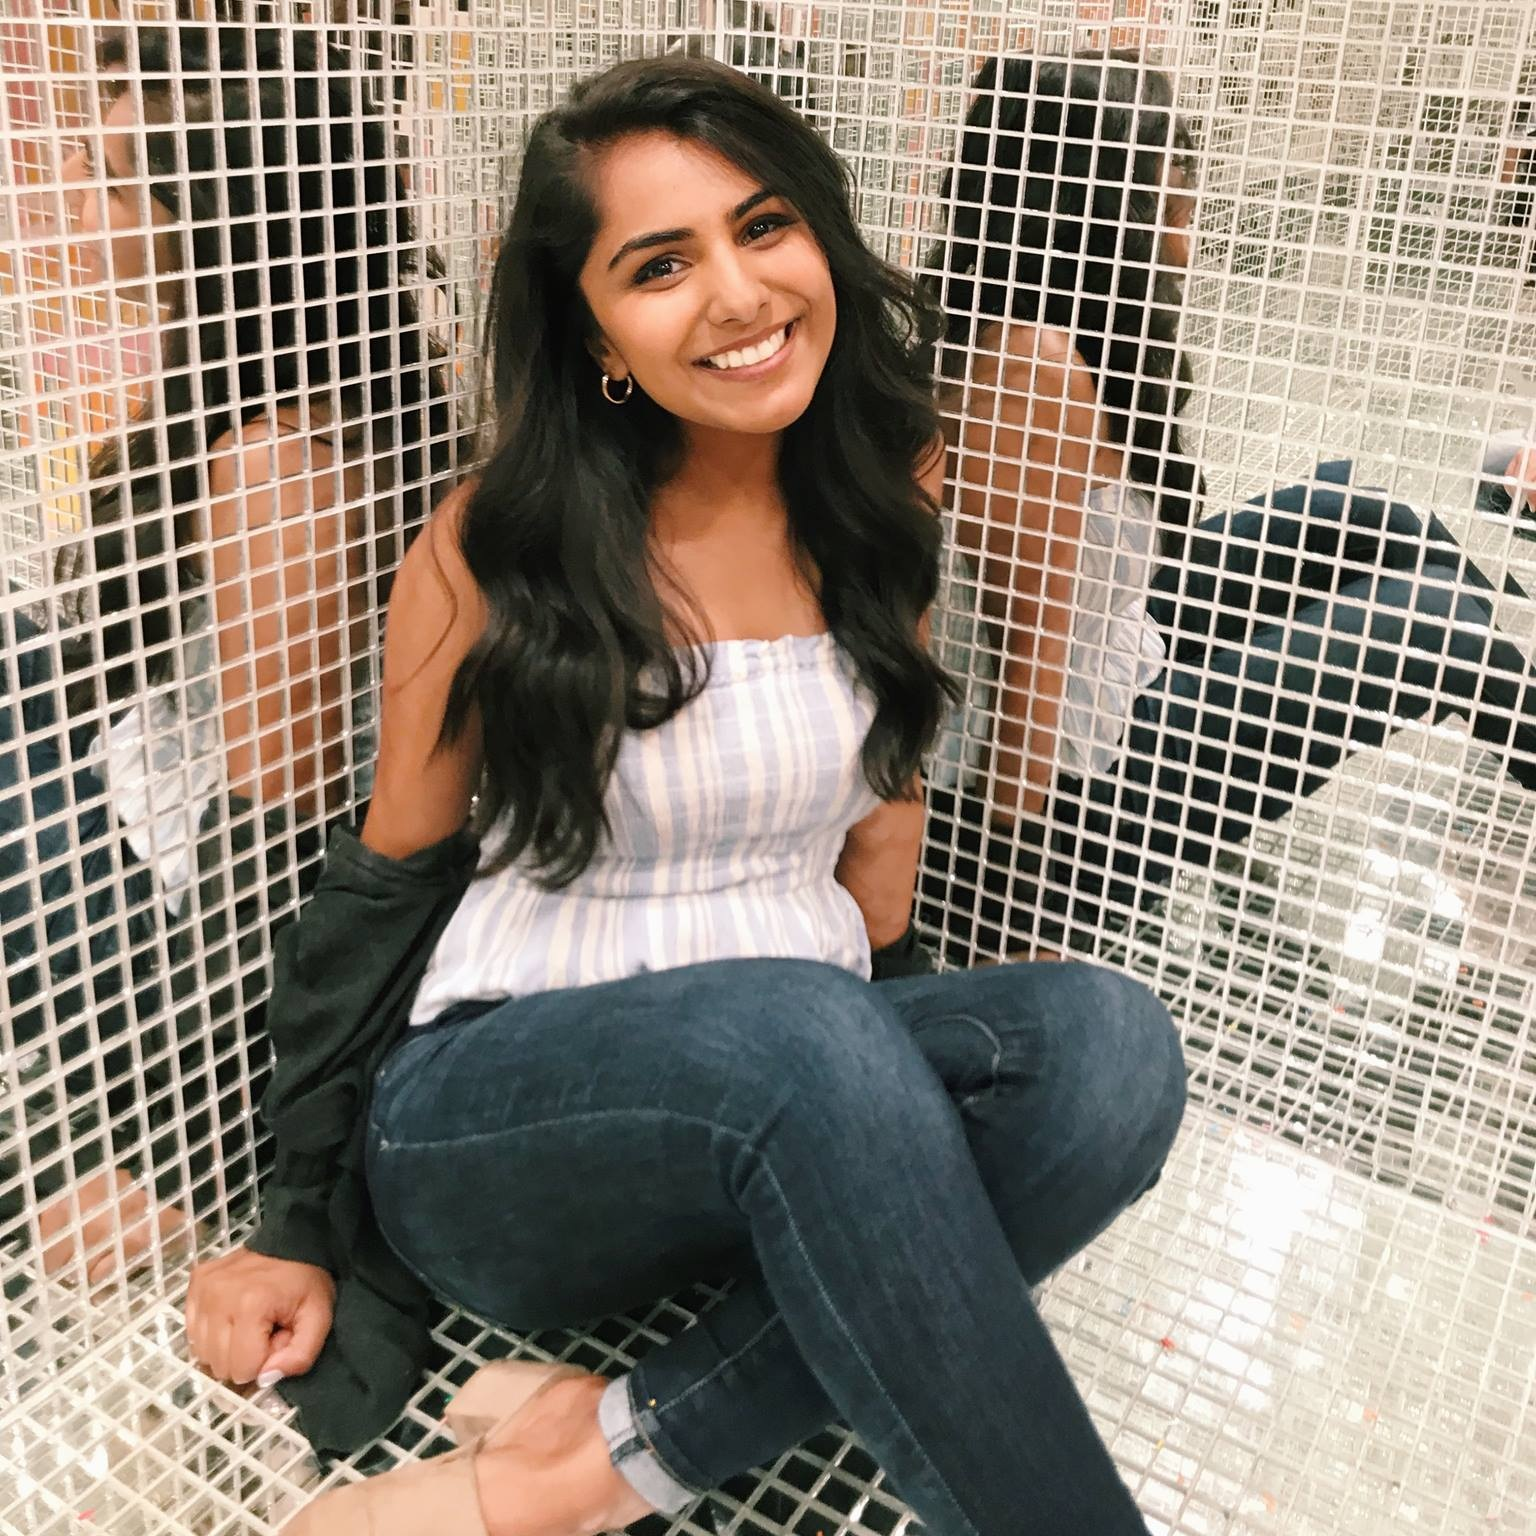 Amy Philip - Class of 2018 - Major: Political Science, Minor: Public PolicyOther Activities: ASUC Senate, 100 Strong, ASUC Legal Clinic, Bollywood Dancing, ReadingFun Fact: I have an unhealthy obsession with Mindy Kaling; Mindy is my spirit animal.About Me: I love all things related to mock trial, debate, and public speaking. I'm super passionate about social justice, female empowerment, and politics. My motto is